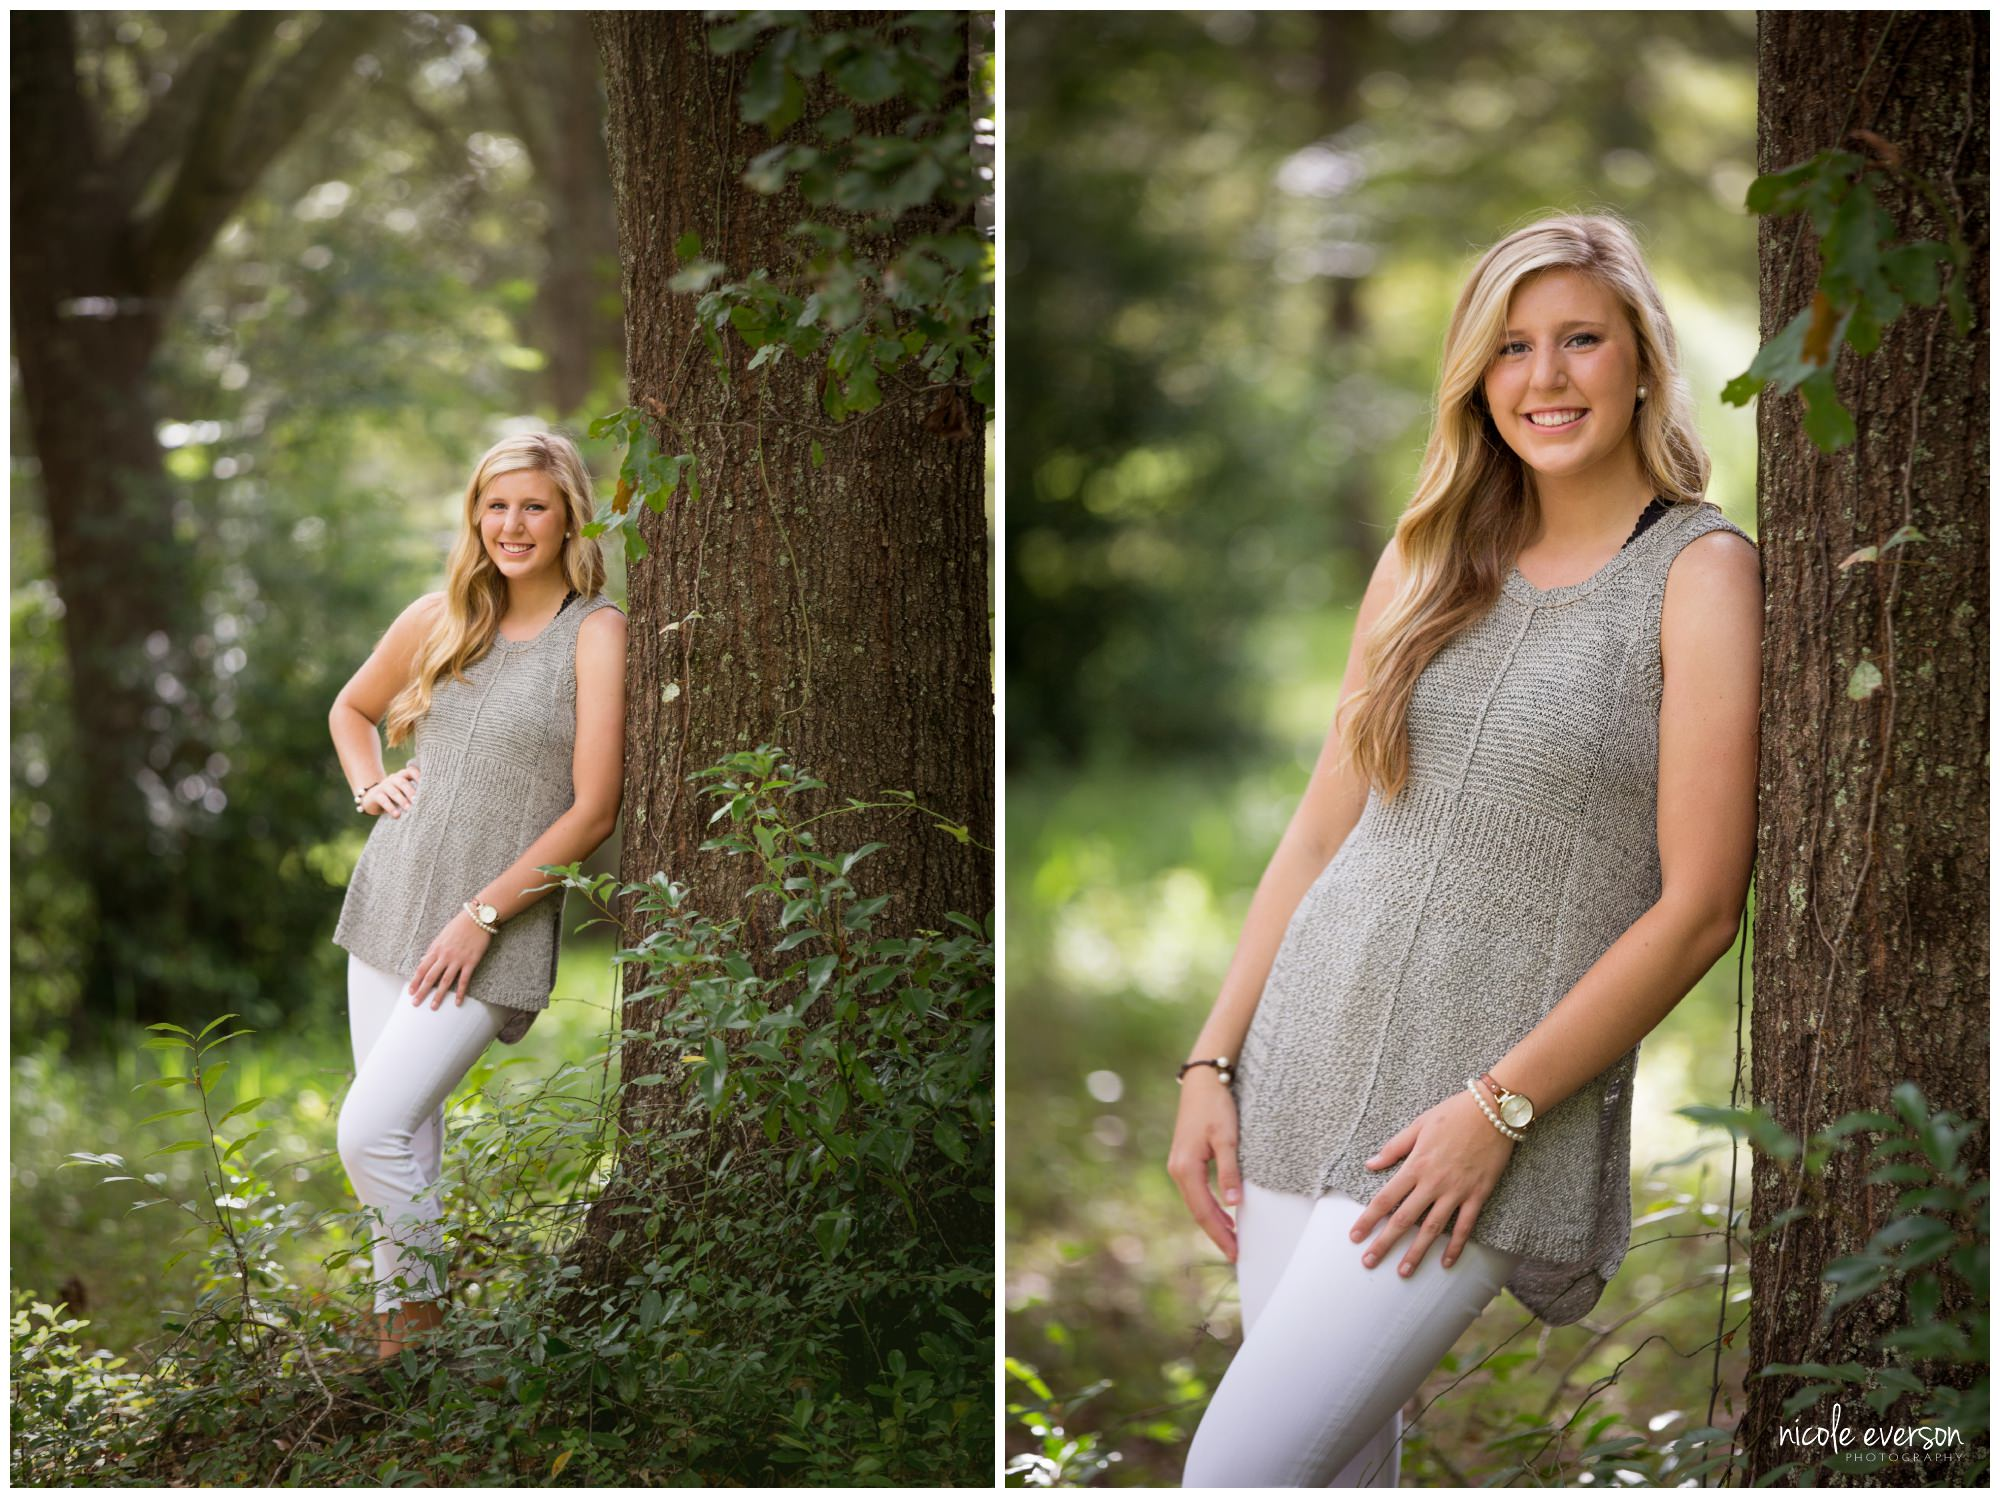 Tallahassee Florida Senior Photographer